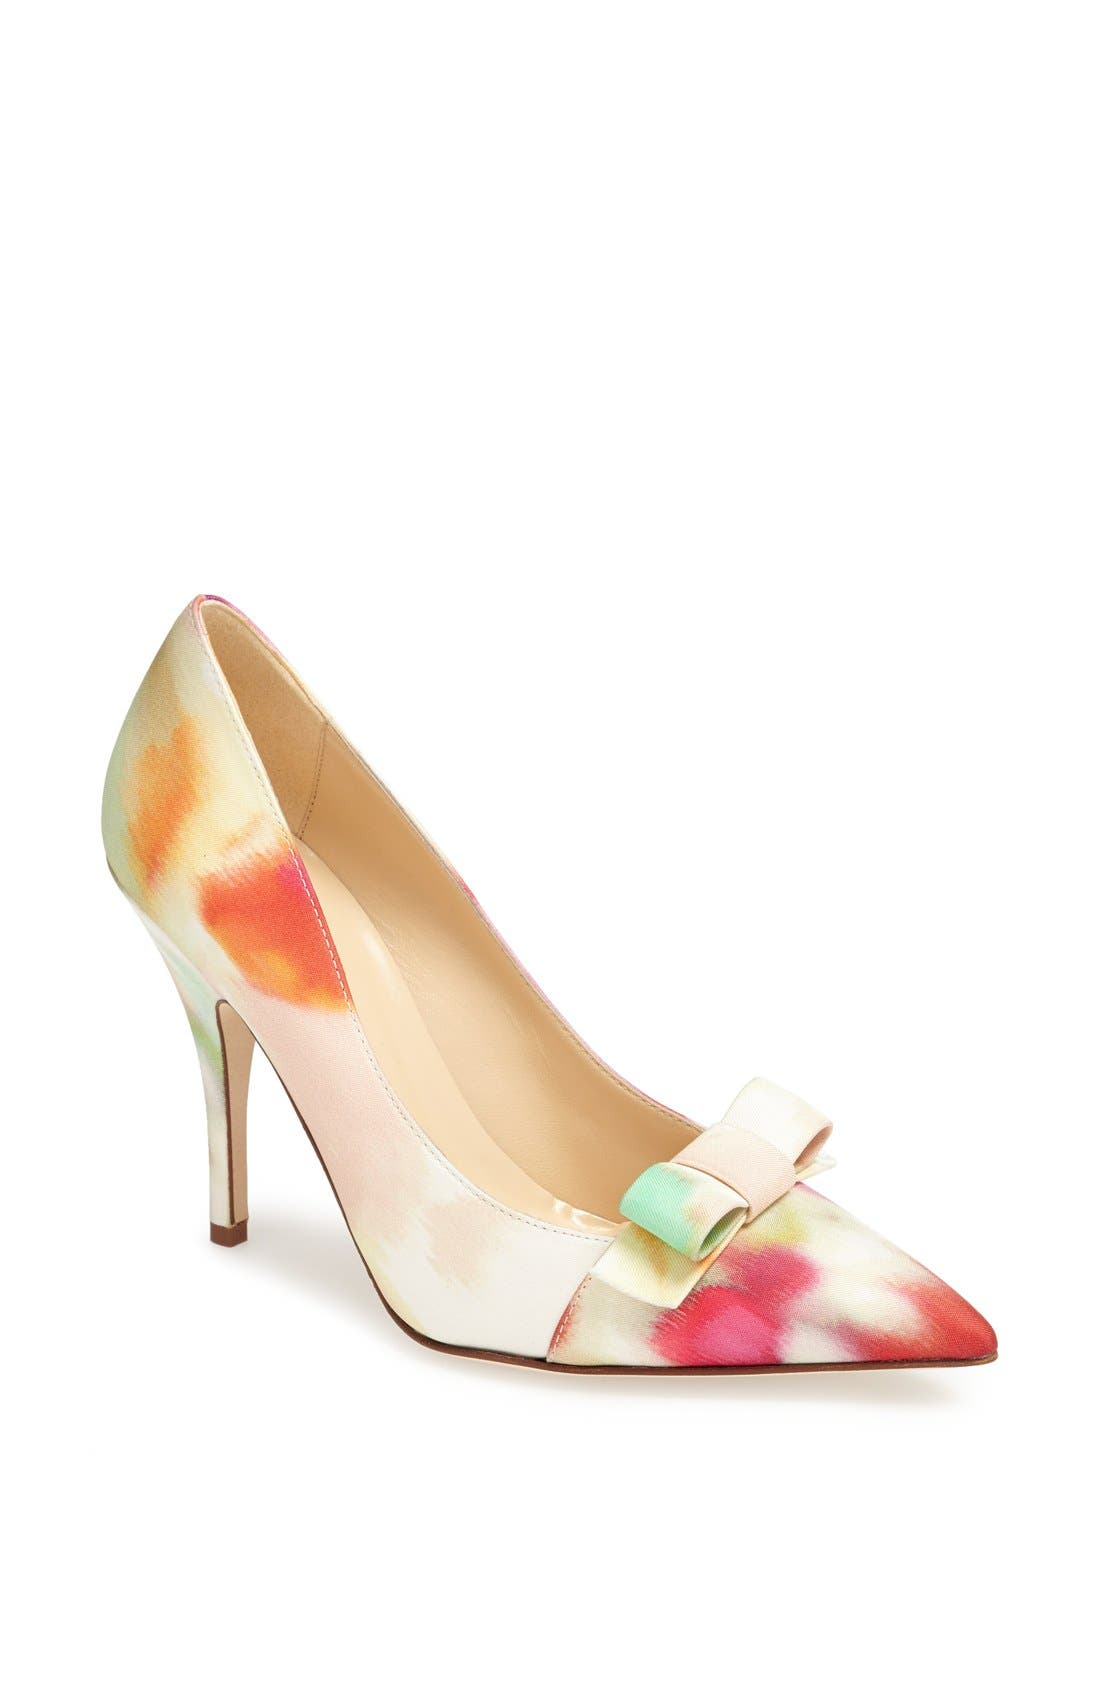 Alternate Image 1 Selected - kate spade 'lilia' pump